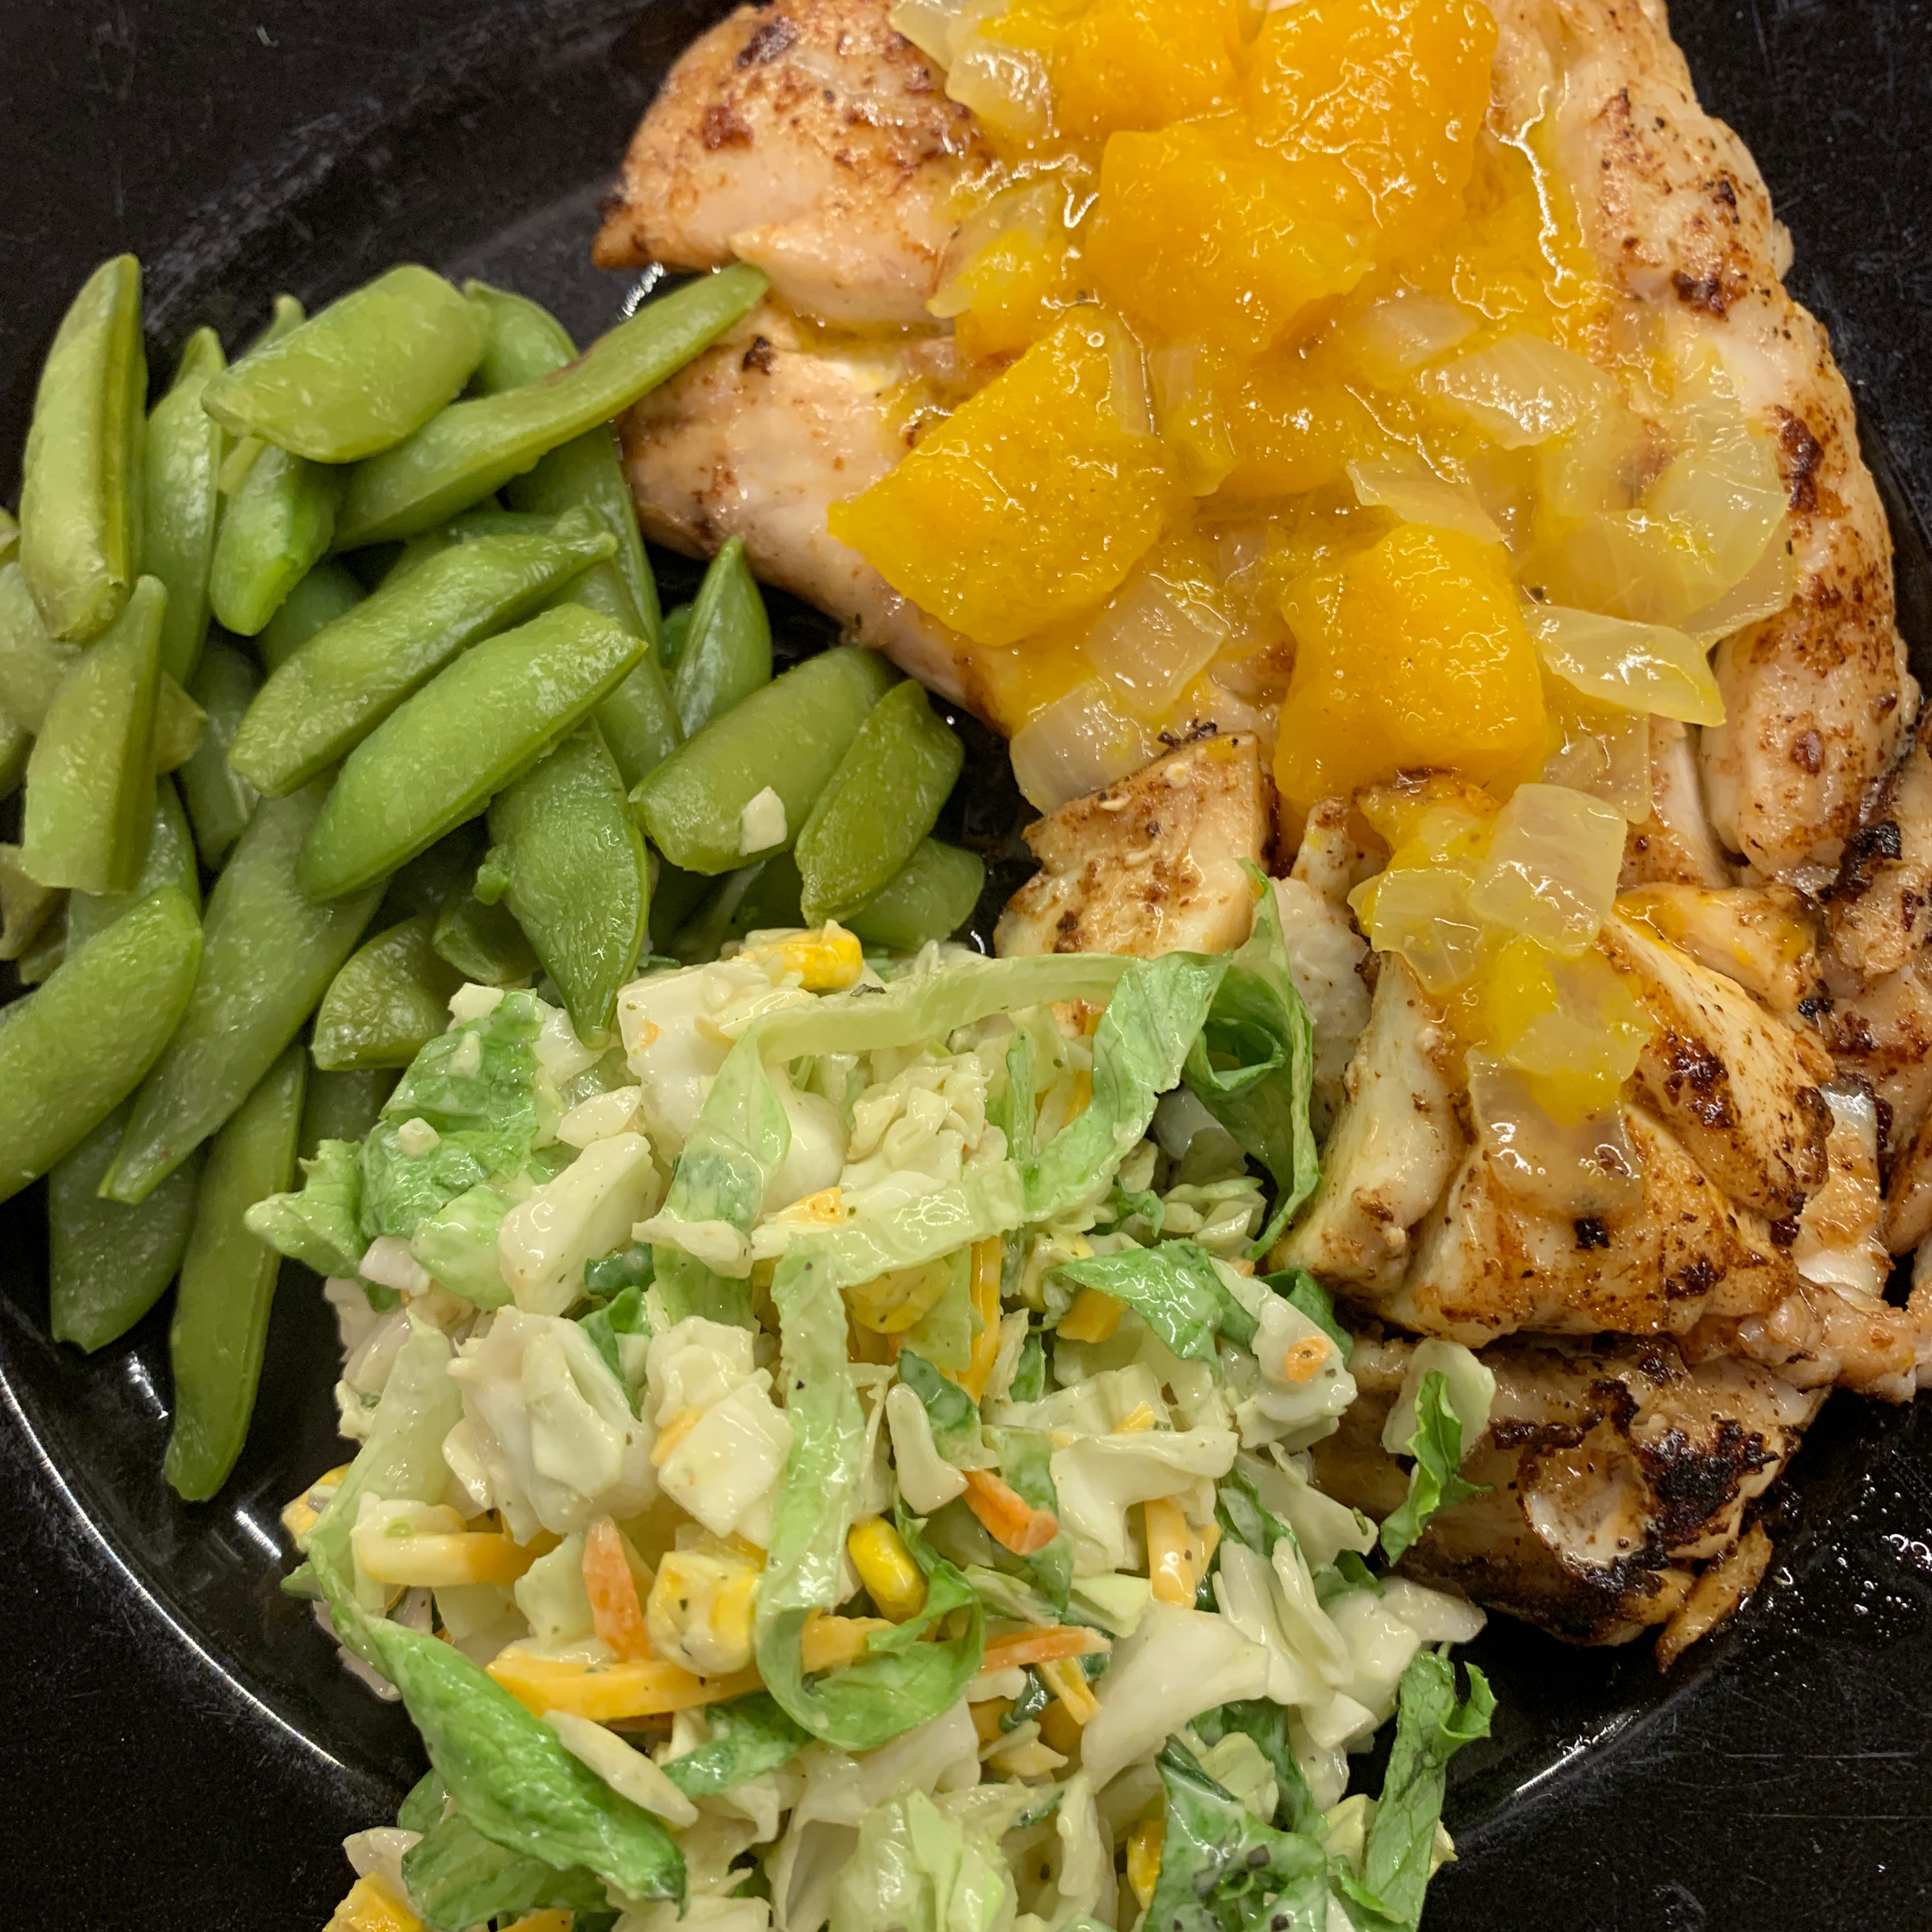 Grilled Grouper with Mango Butter Mrs. B